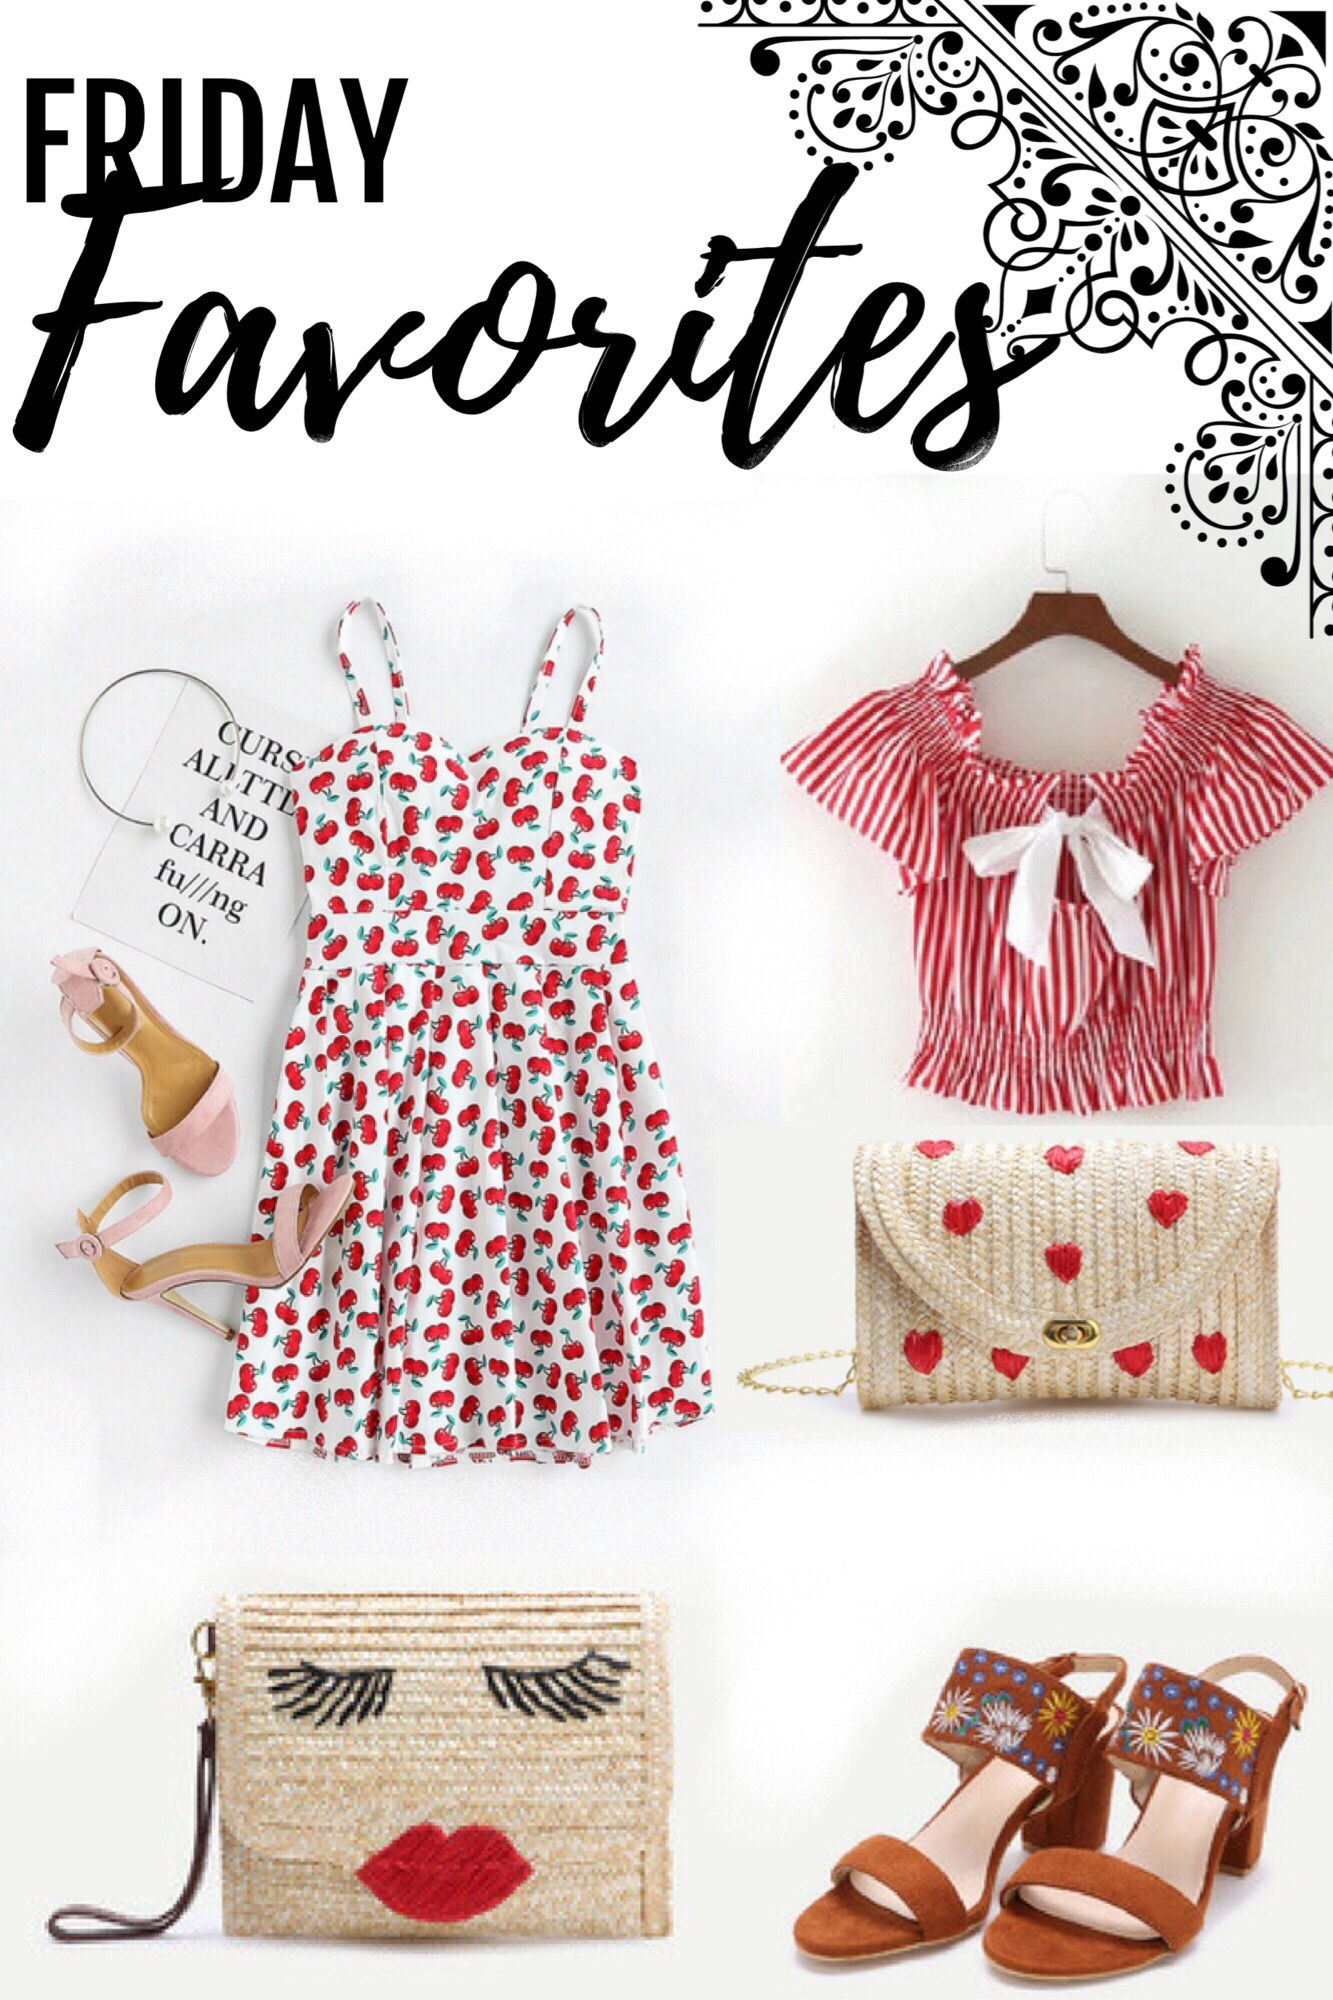 FRIDAY FAVORITES: SUMMER STYLE WISHLIST